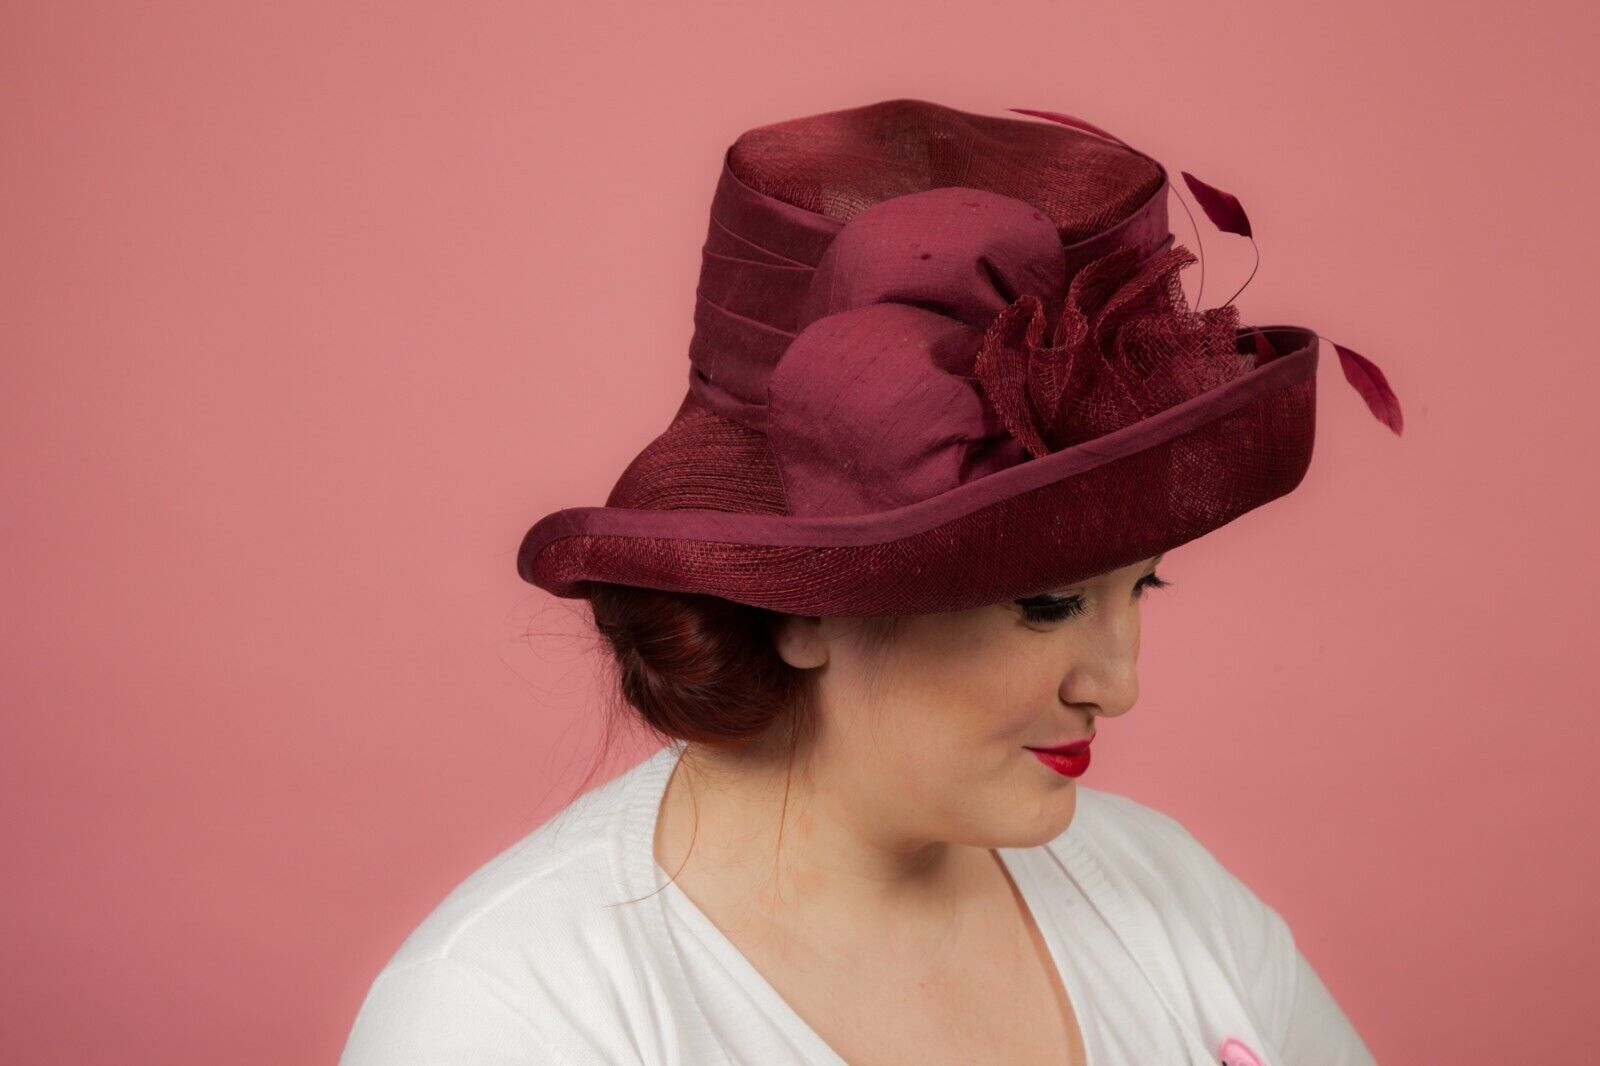 Burgundy Claret feathered formal hat by Pamela Bromley